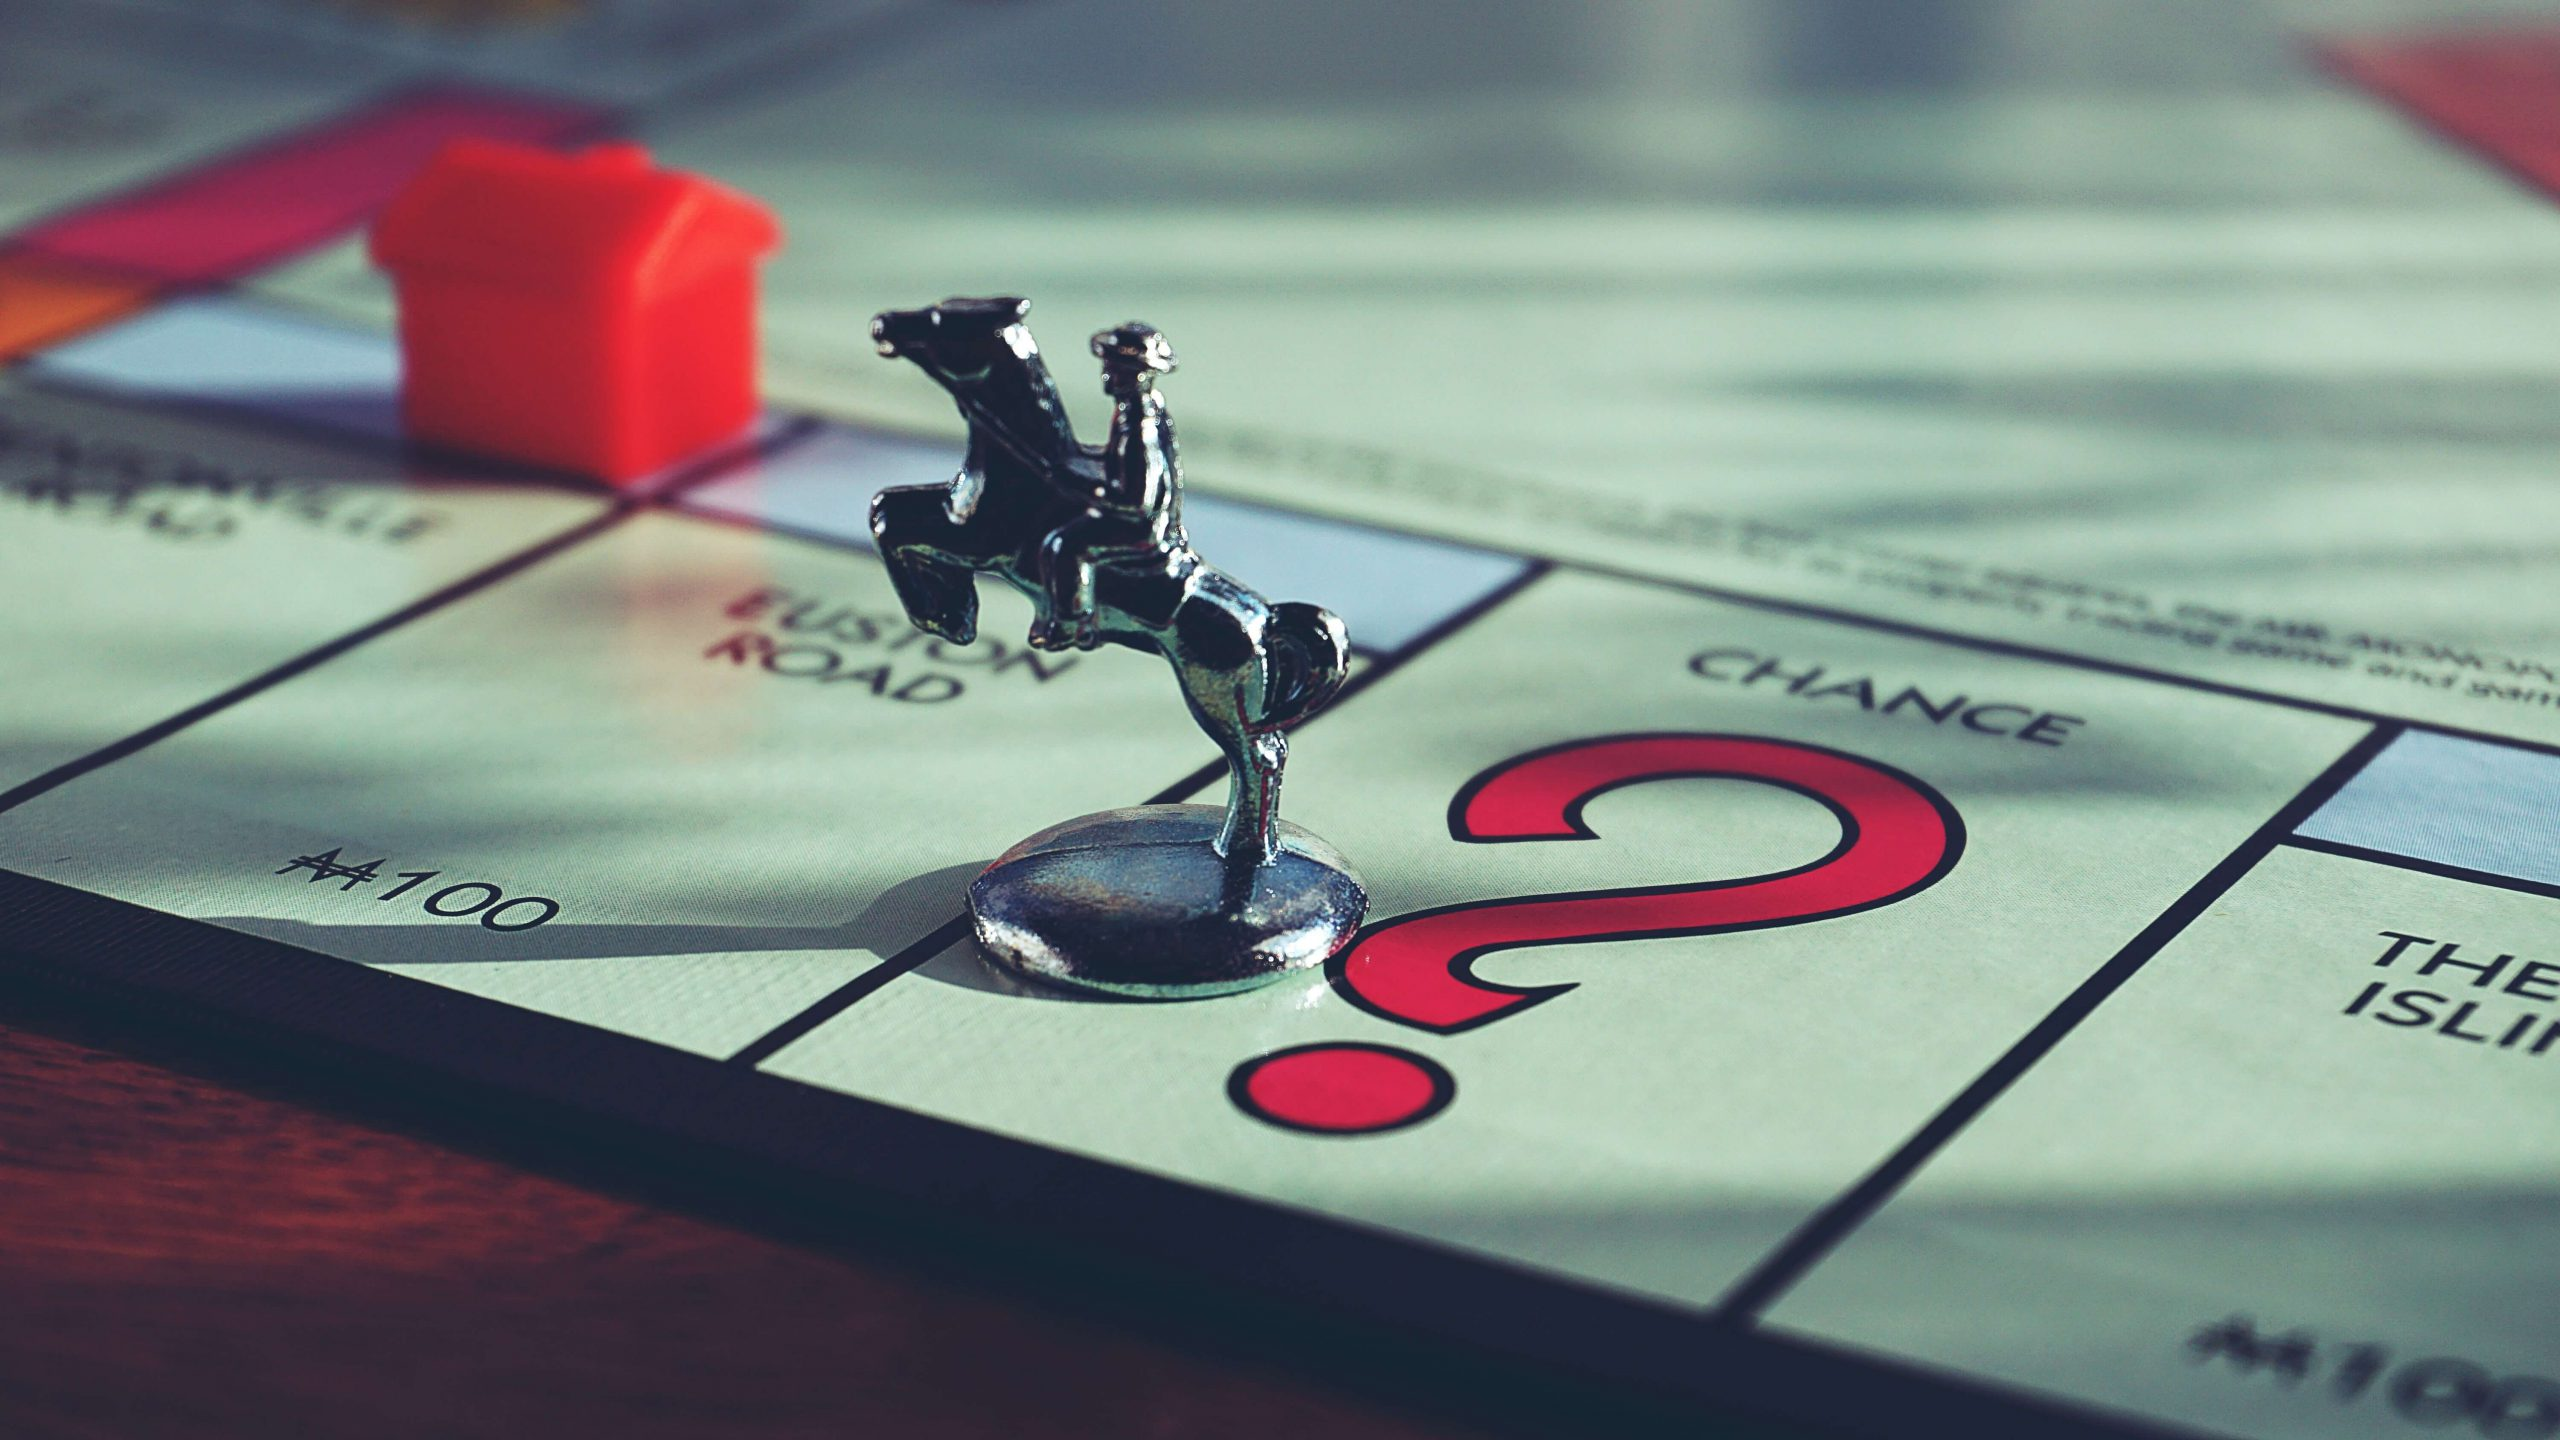 Top 10 monopoly tips om te winnen blog foto